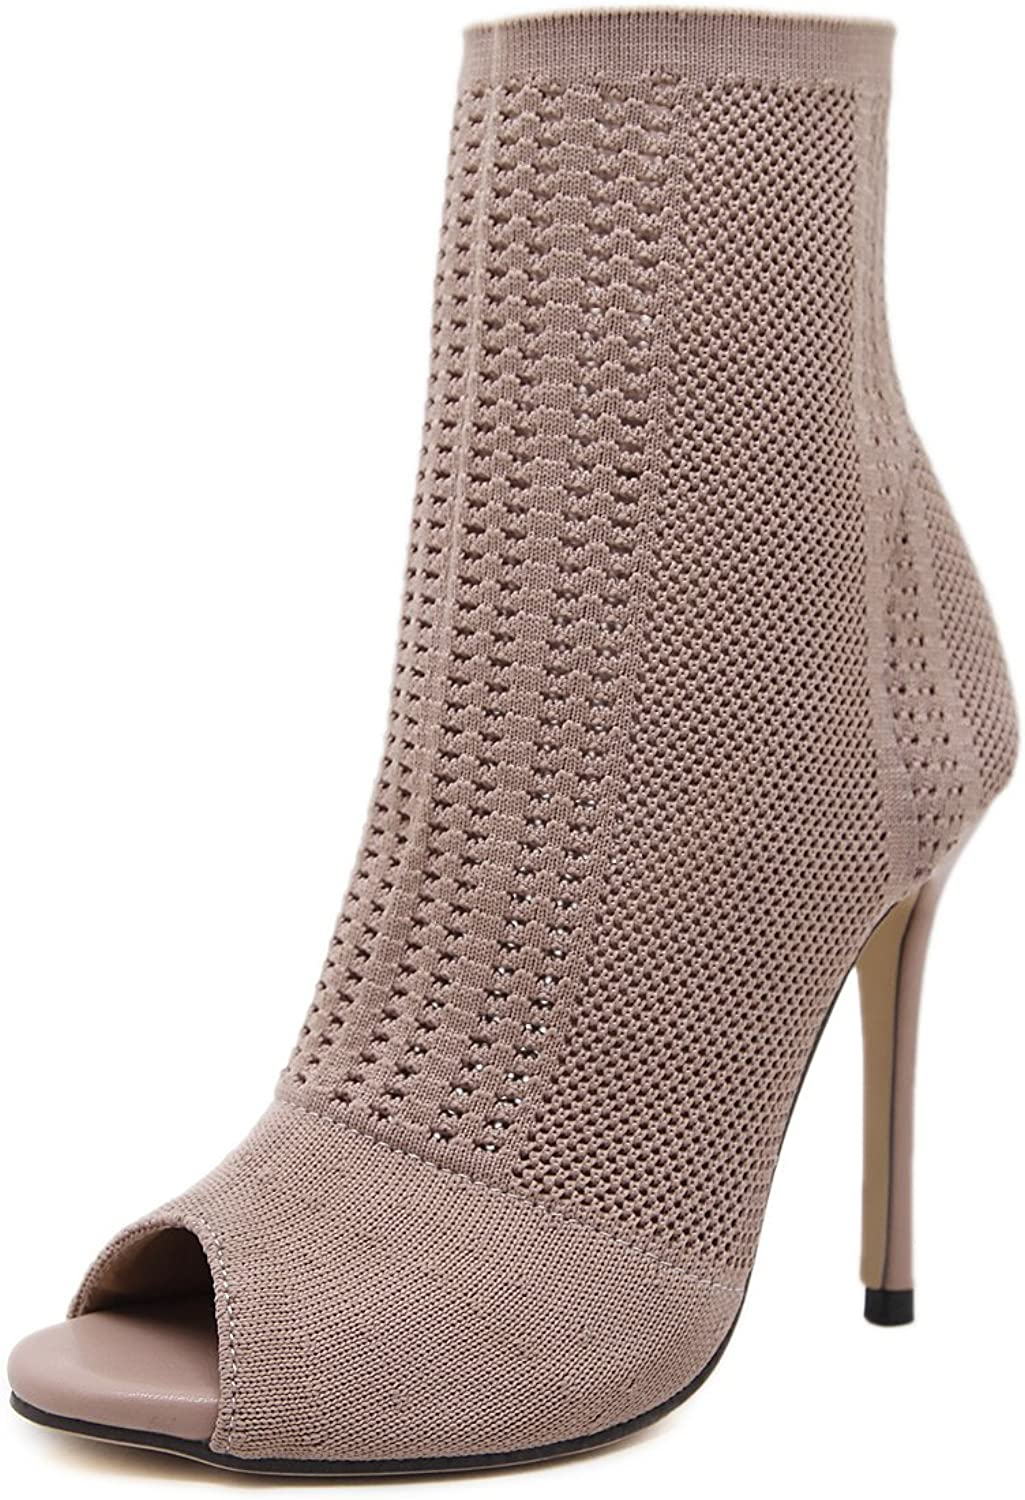 MOBAI Womens Peep Toe Knitting Bootie Pumps Stiletto High Heel Sandals